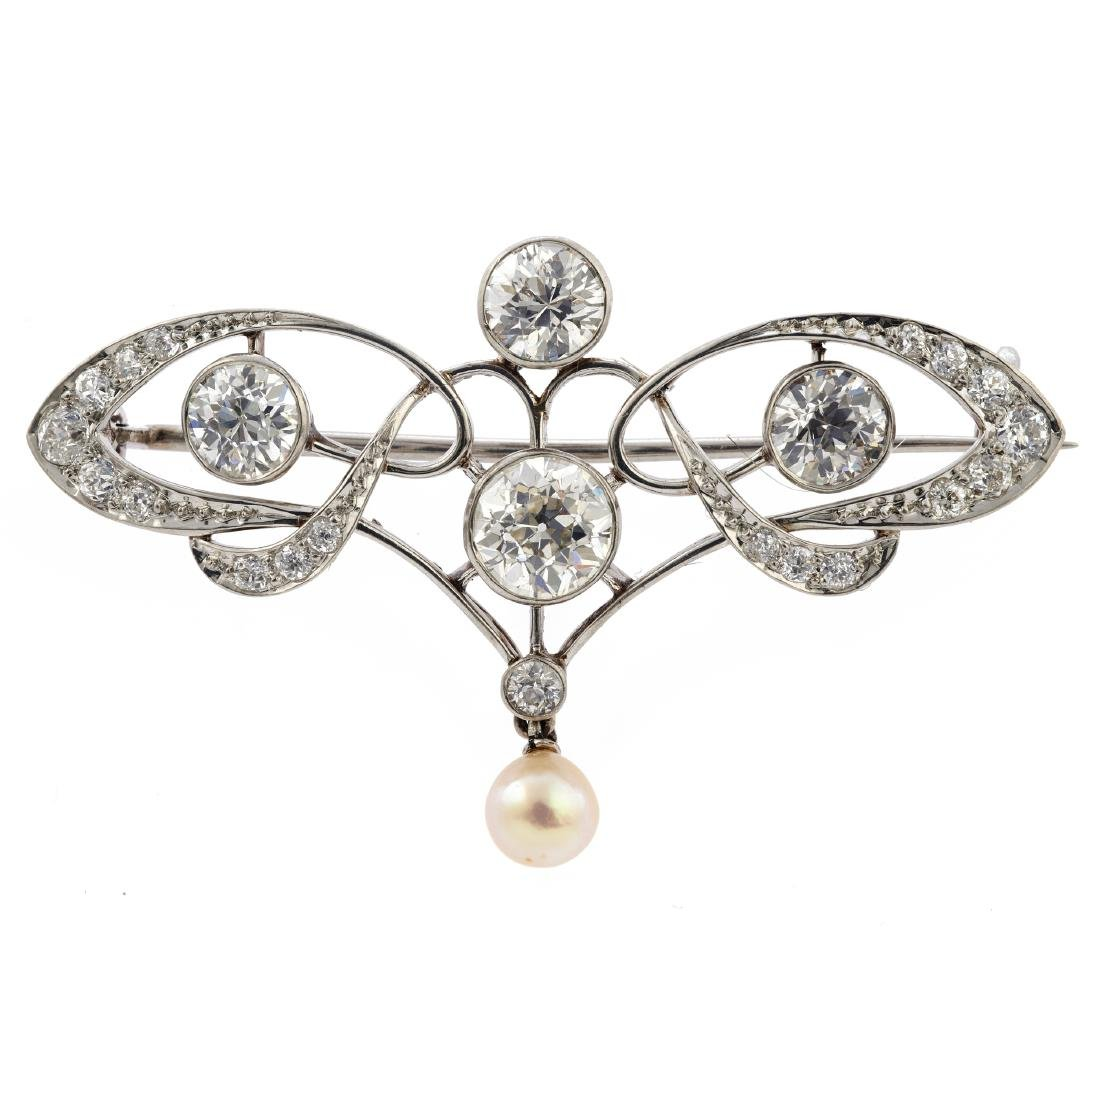 An Edwardian diamond, cultured pearl, platinum brooch